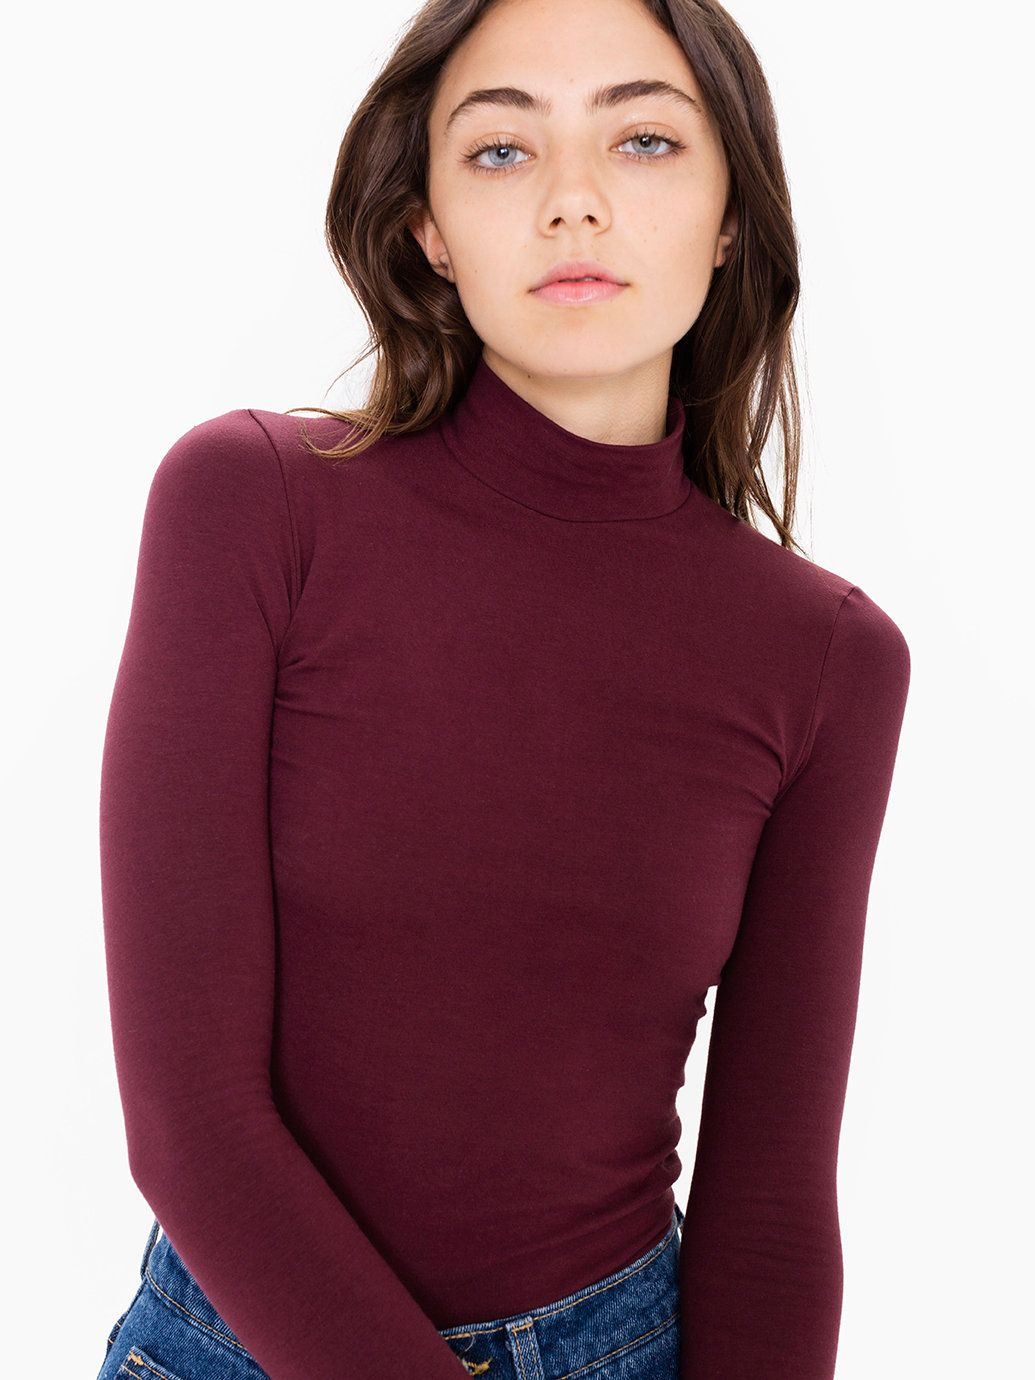 Cotton Spandex Long Sleeve Turtleneck Top | ladybird. | Pinterest ...